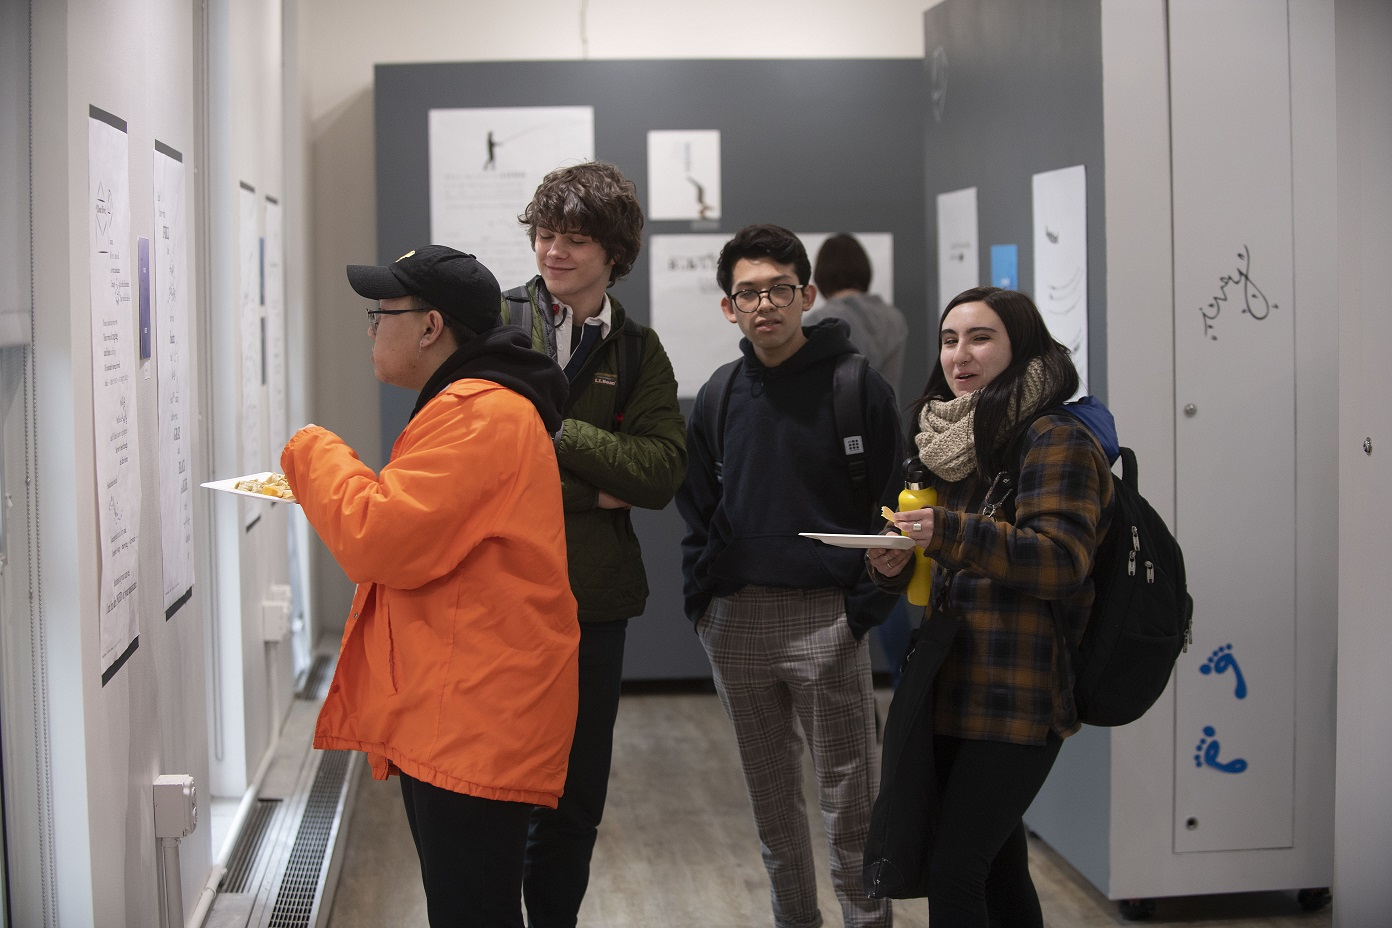 Students admire work at the Concrete Poetry Gallery Opening